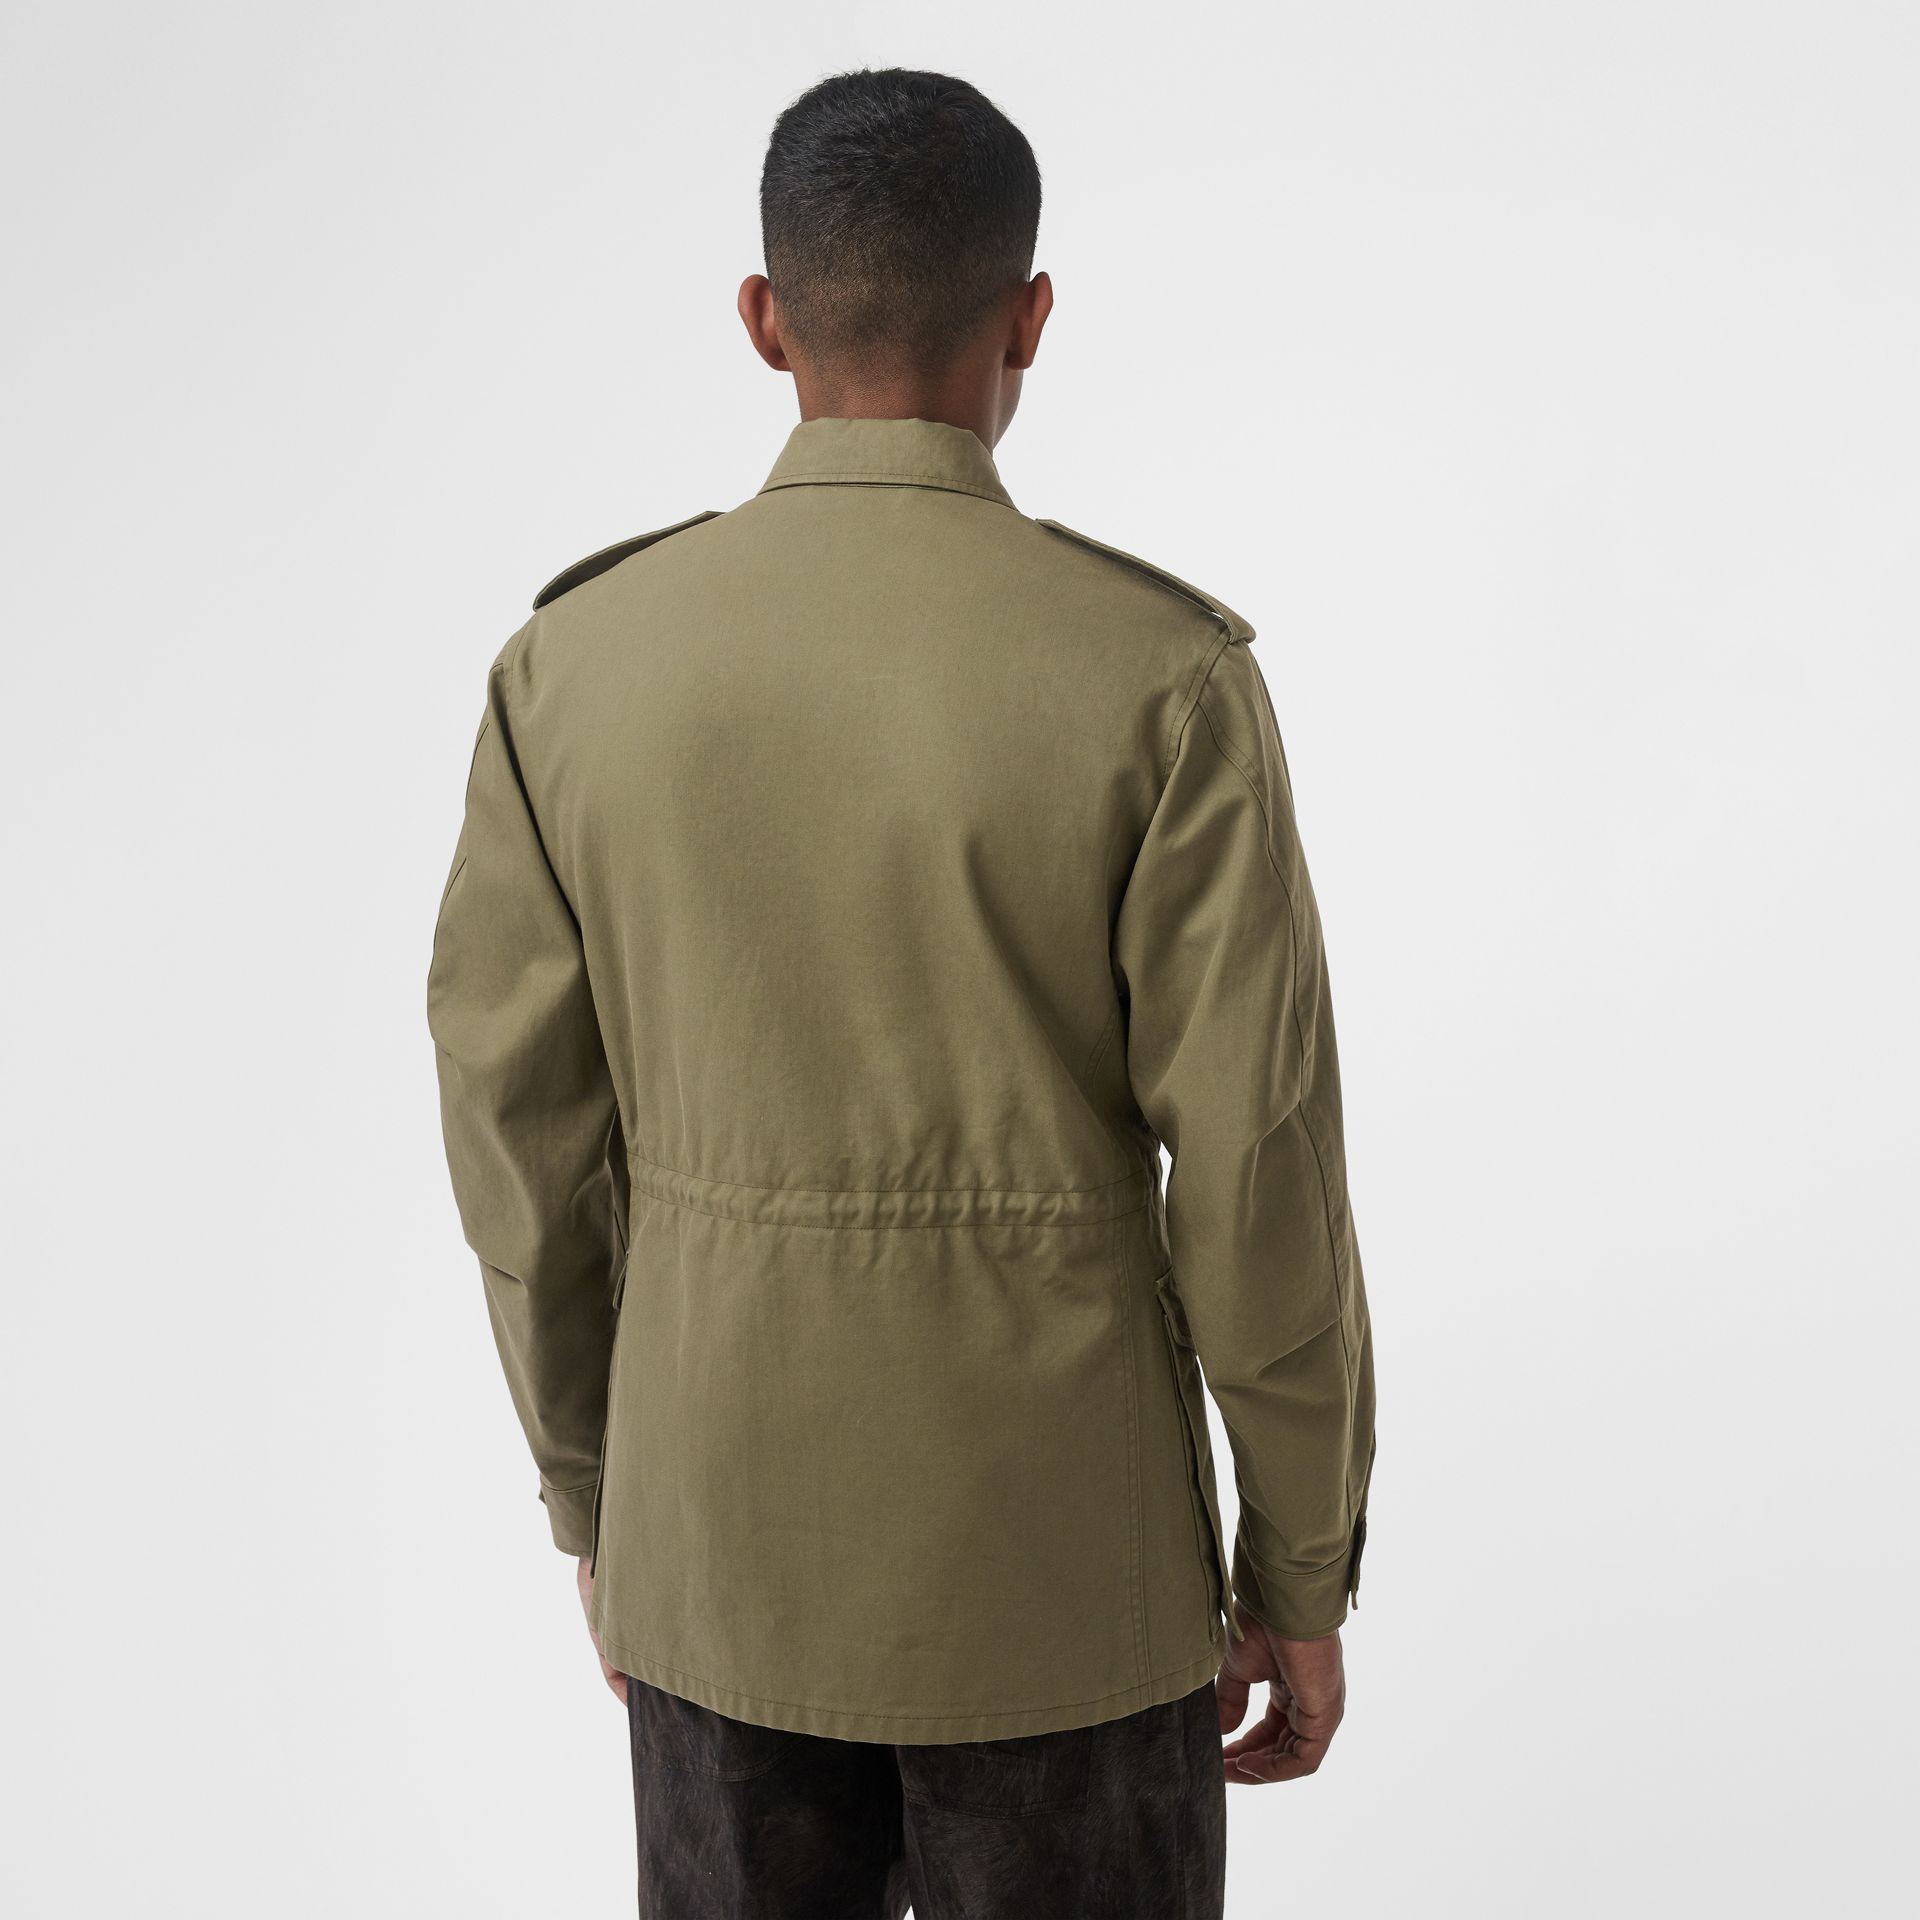 Logo Detail Cotton Field Jacket in Olive - Men | Burberry - gallery image 2